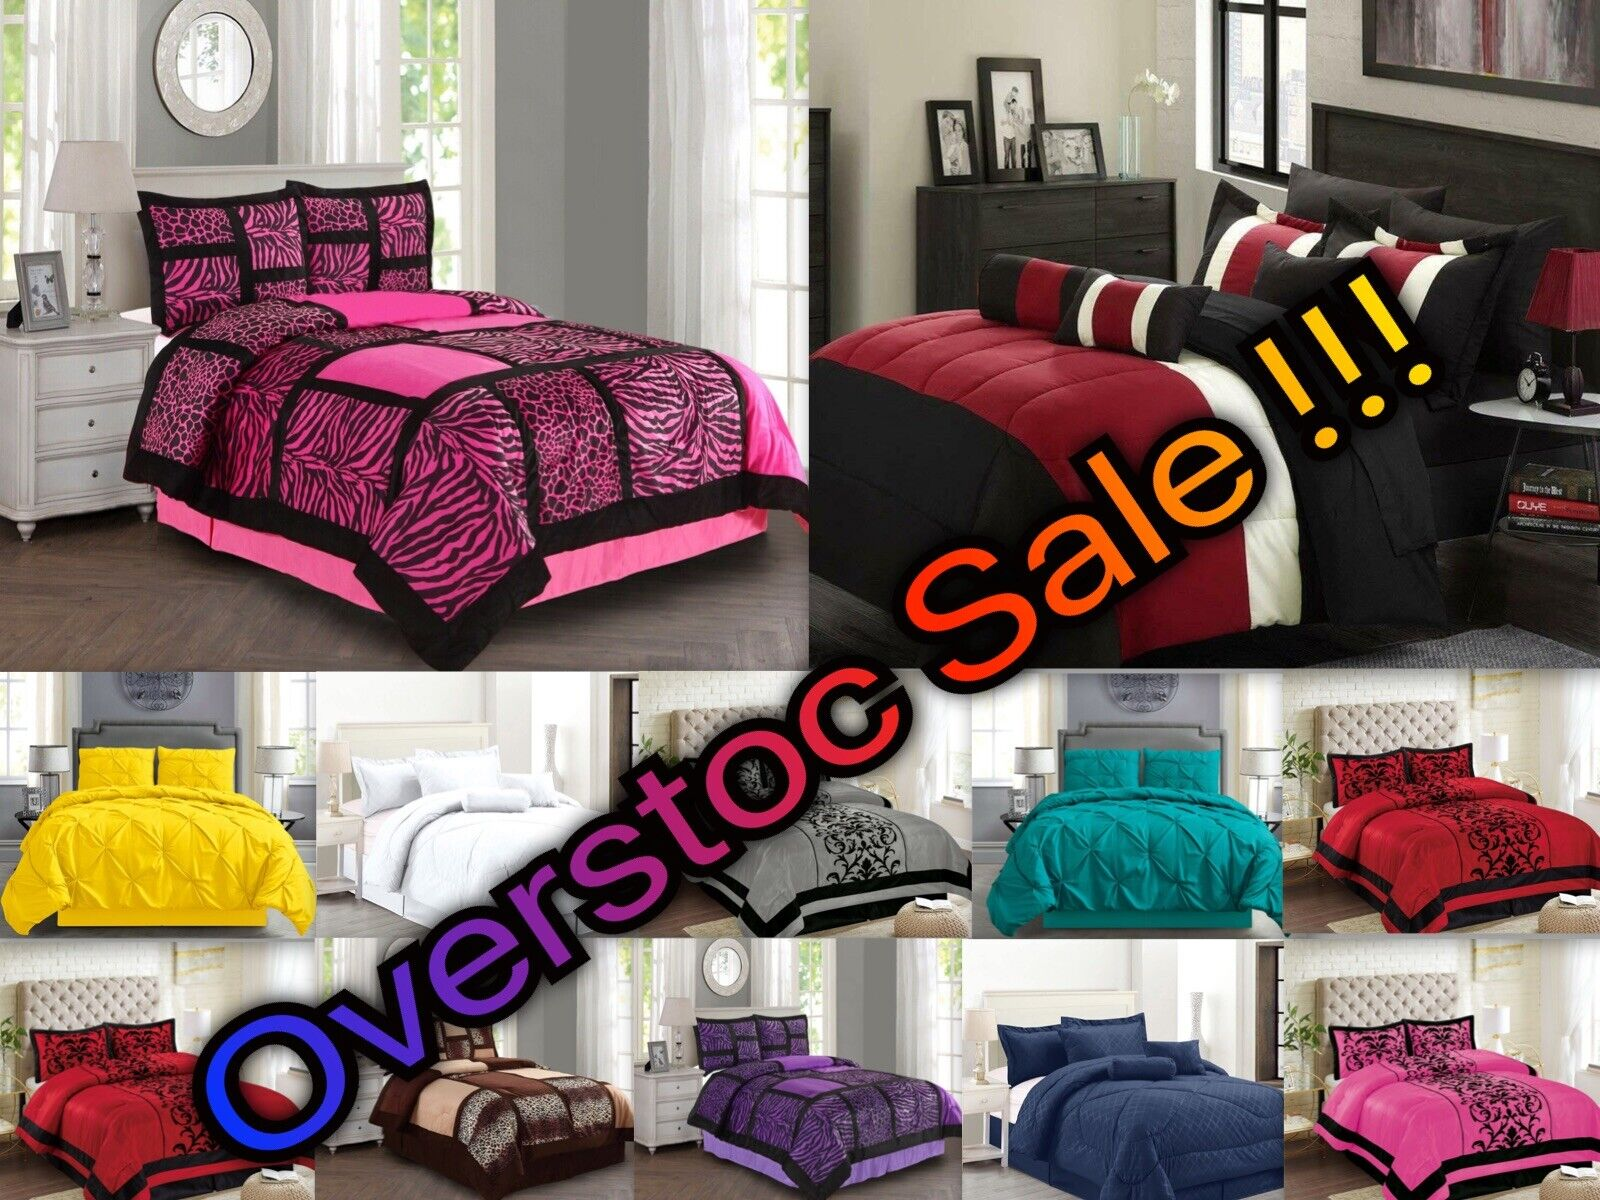 4 piece comforter set all colors all